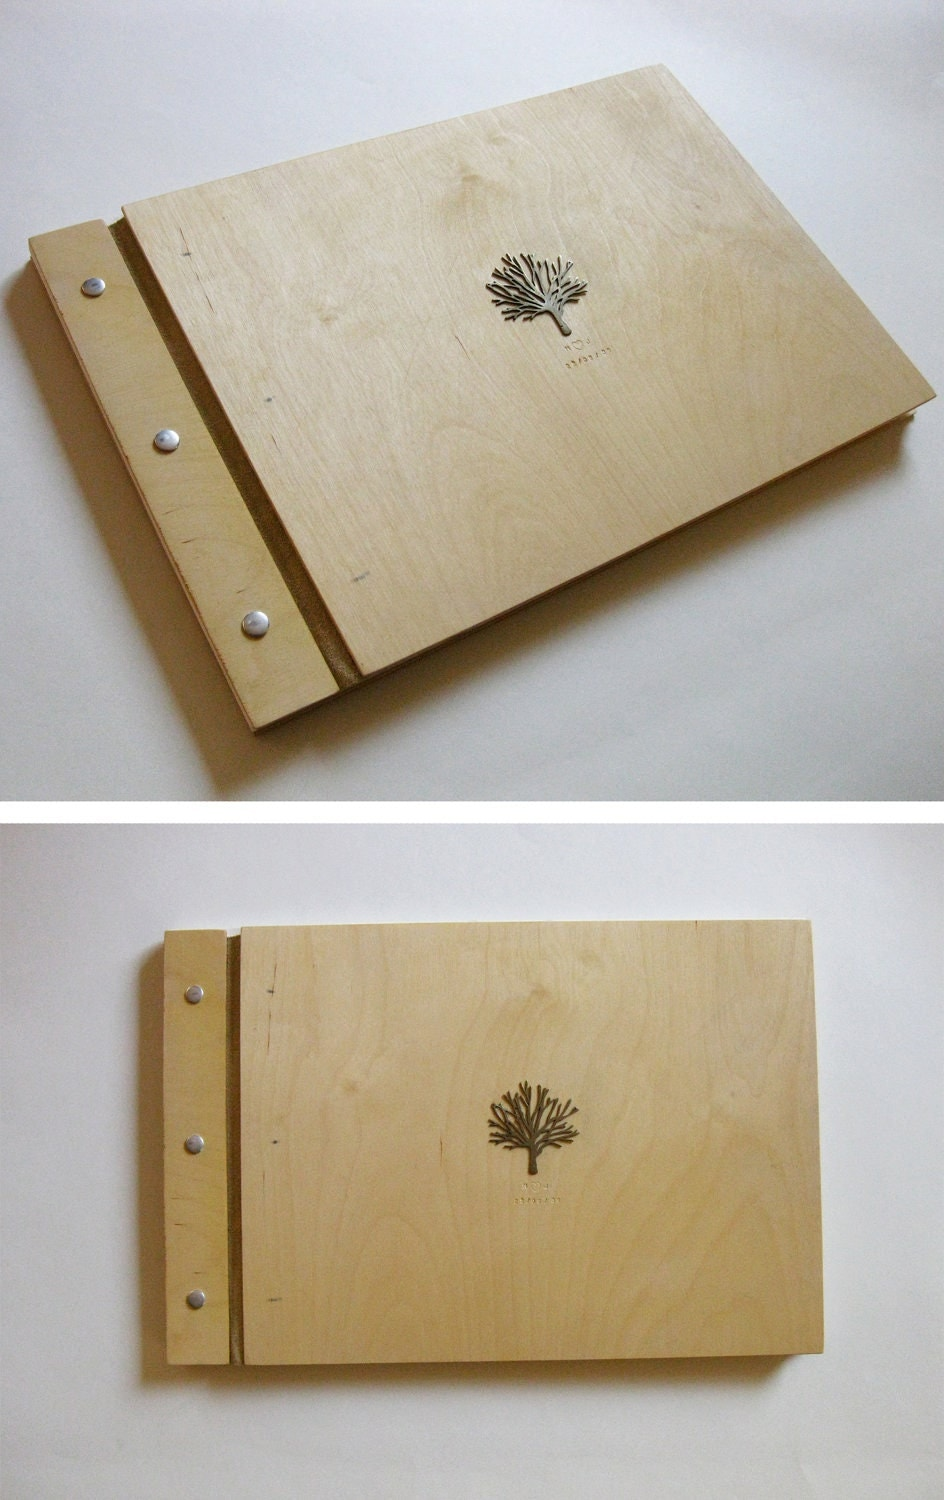 Wood Wedding Album - 9 x 12 - white brass tree or woodburned monogram - eco wedding custom gift - BlisscraftandBrazen